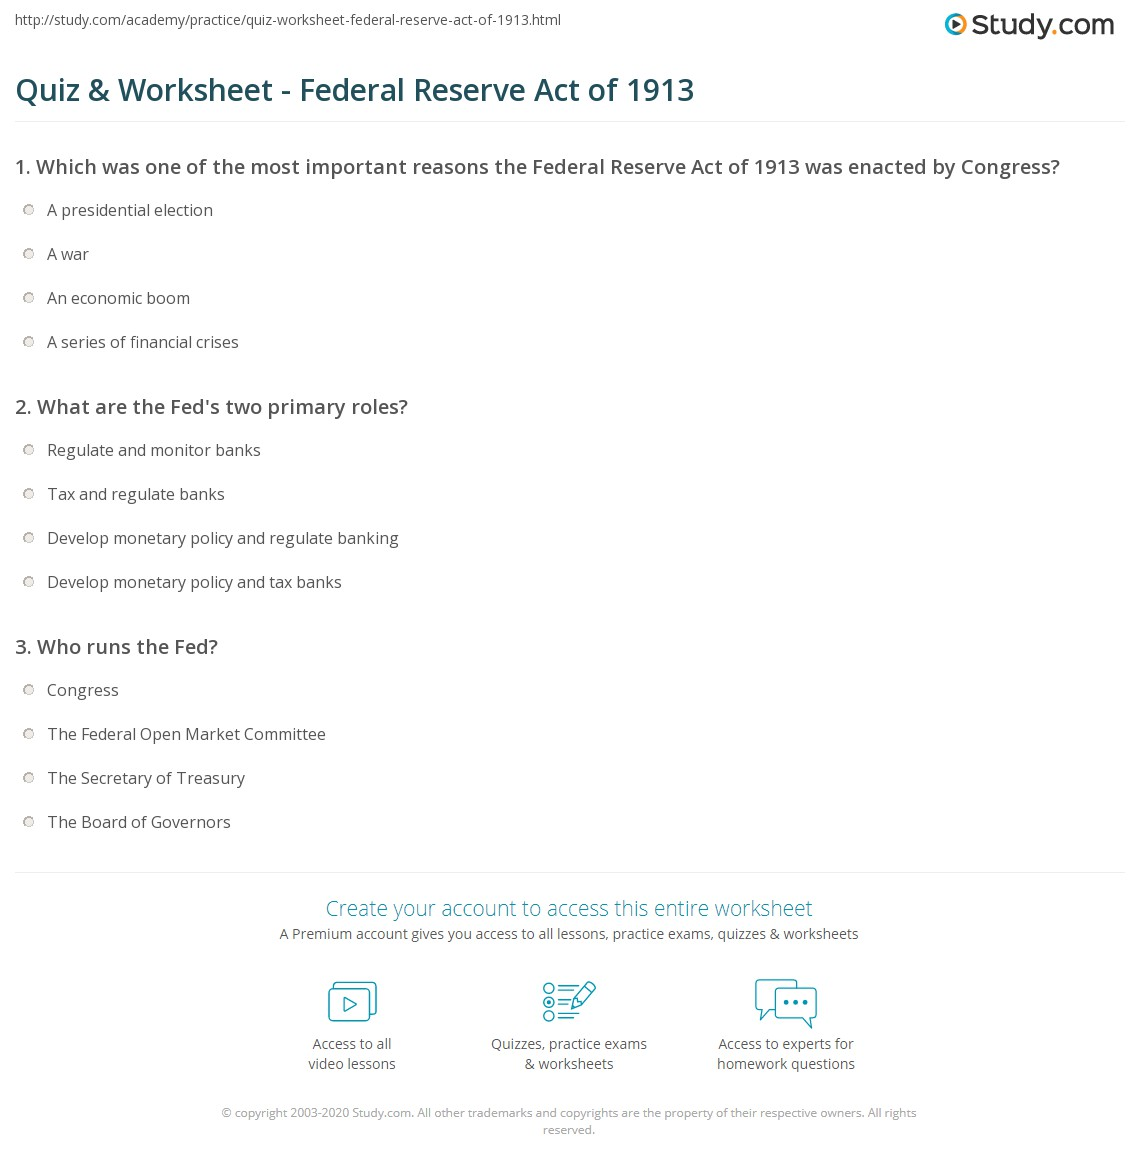 quiz & worksheet - federal reserve act of 1913 | study